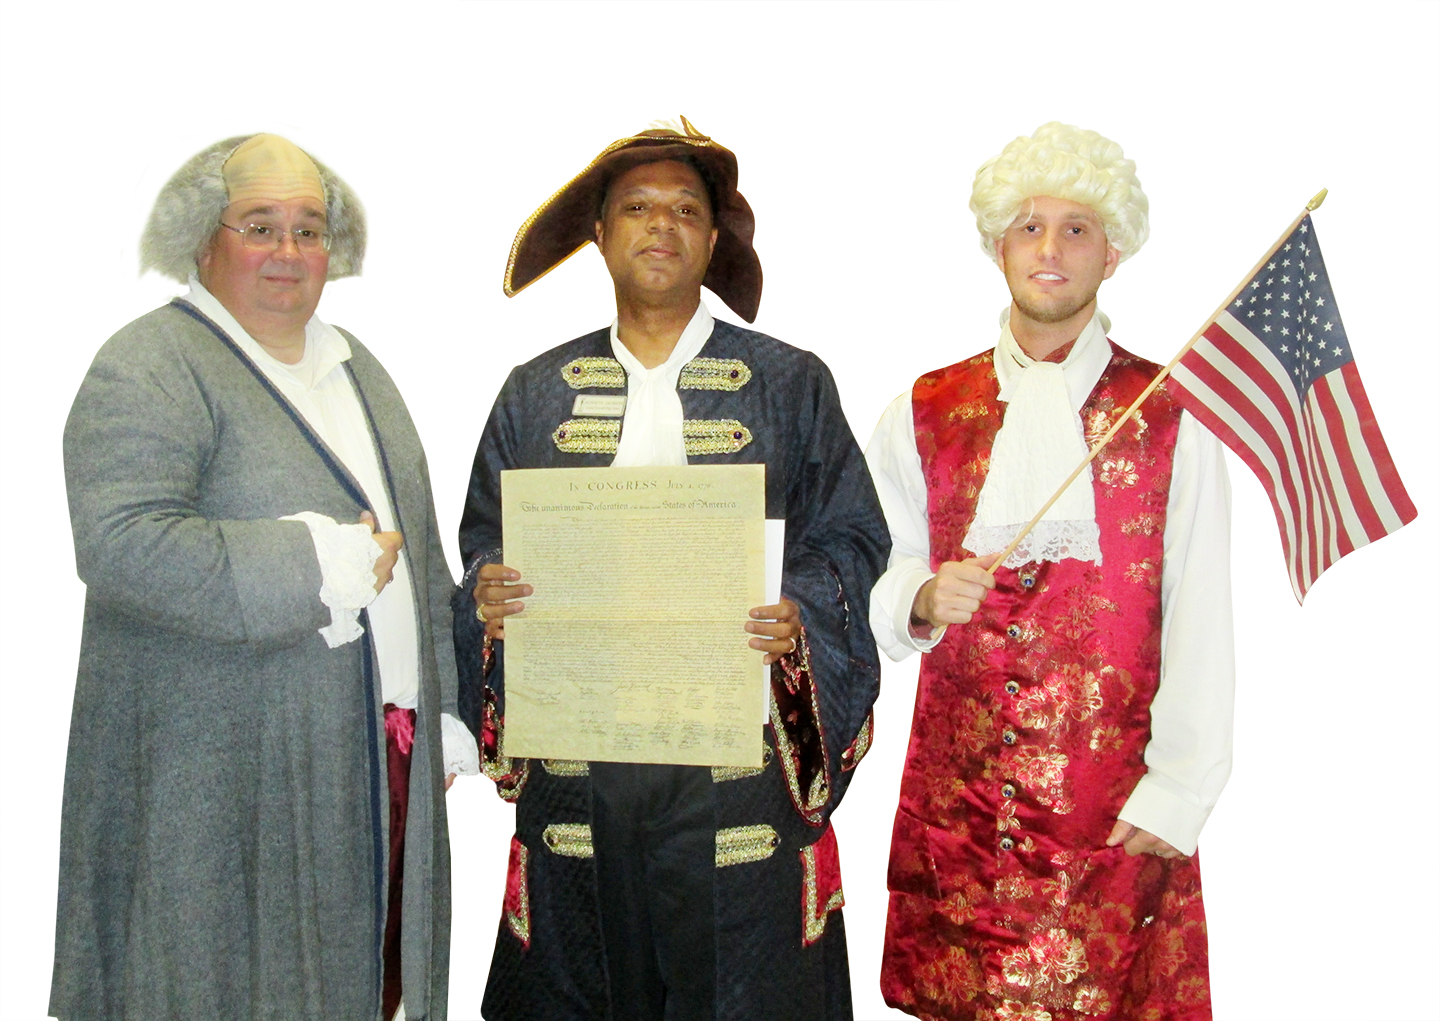 GCPS teachers go the extra mile to bring the Constitution to life.